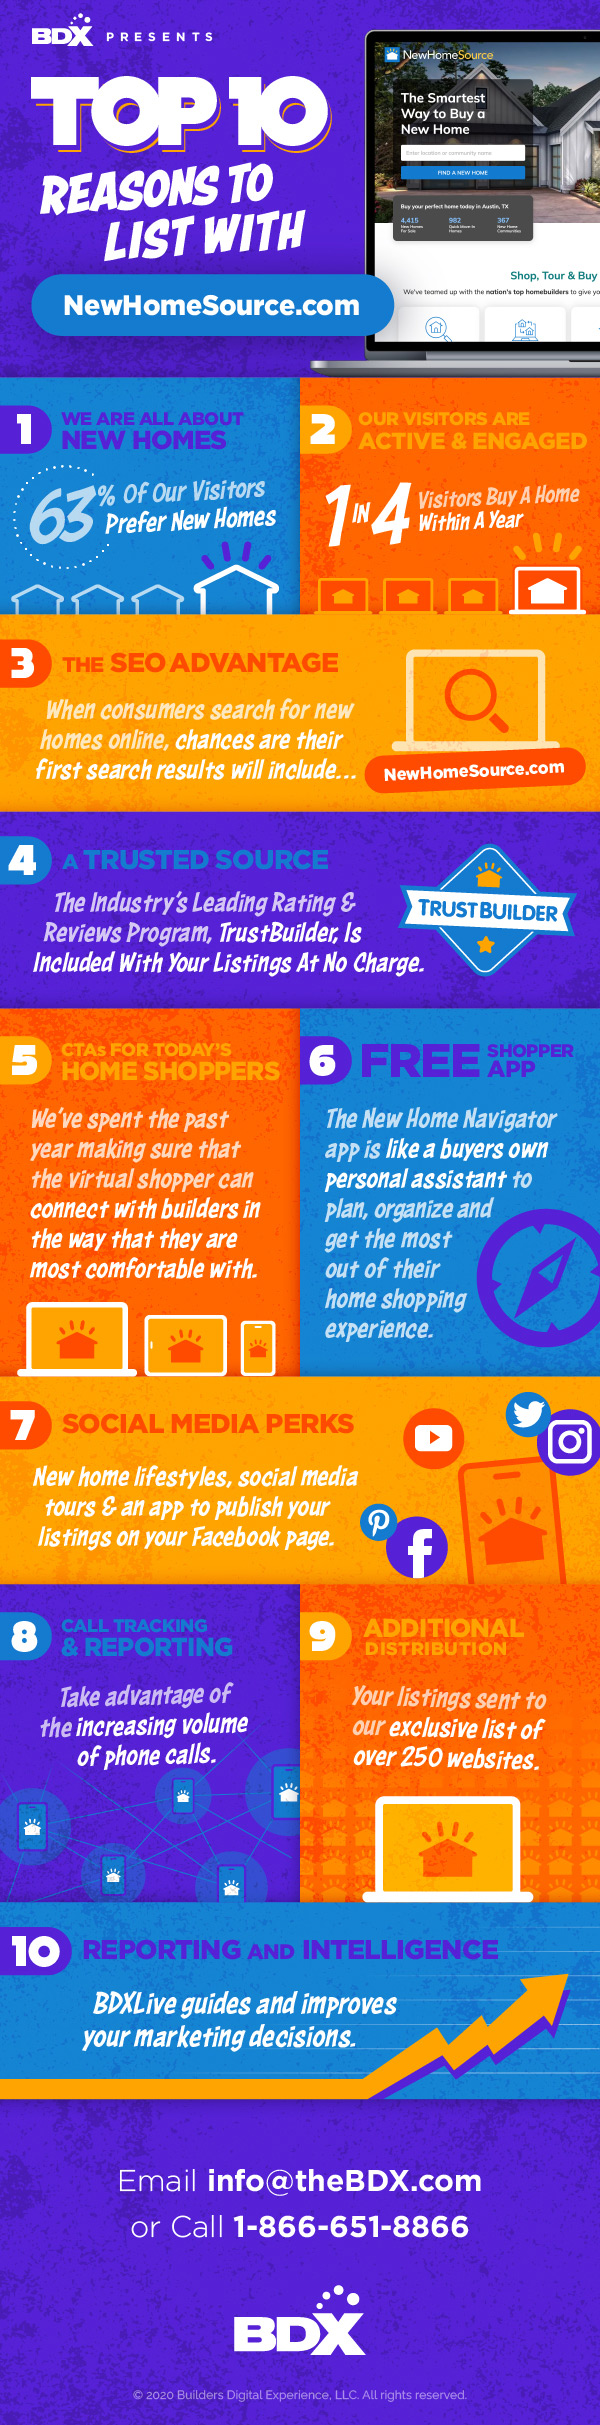 Infographic- Top 10 Reasons To List With New Home Source